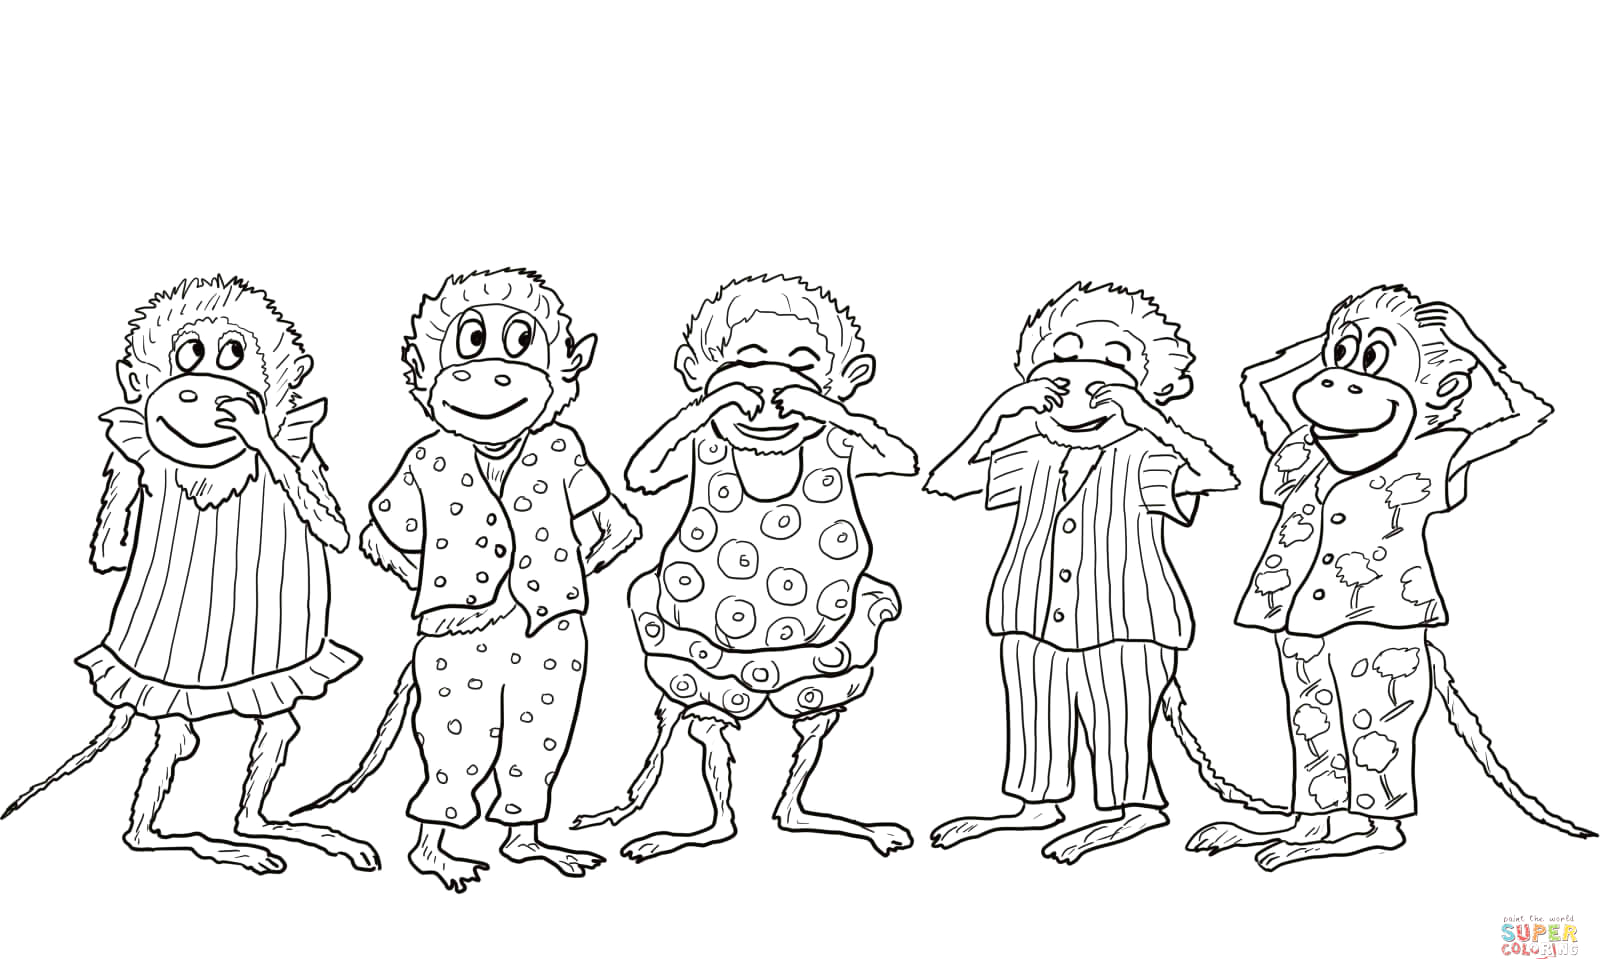 Monkeys Jumping On the Bed Coloring Pages Five Little Monkeys Jumping On the Bed Coloring Page